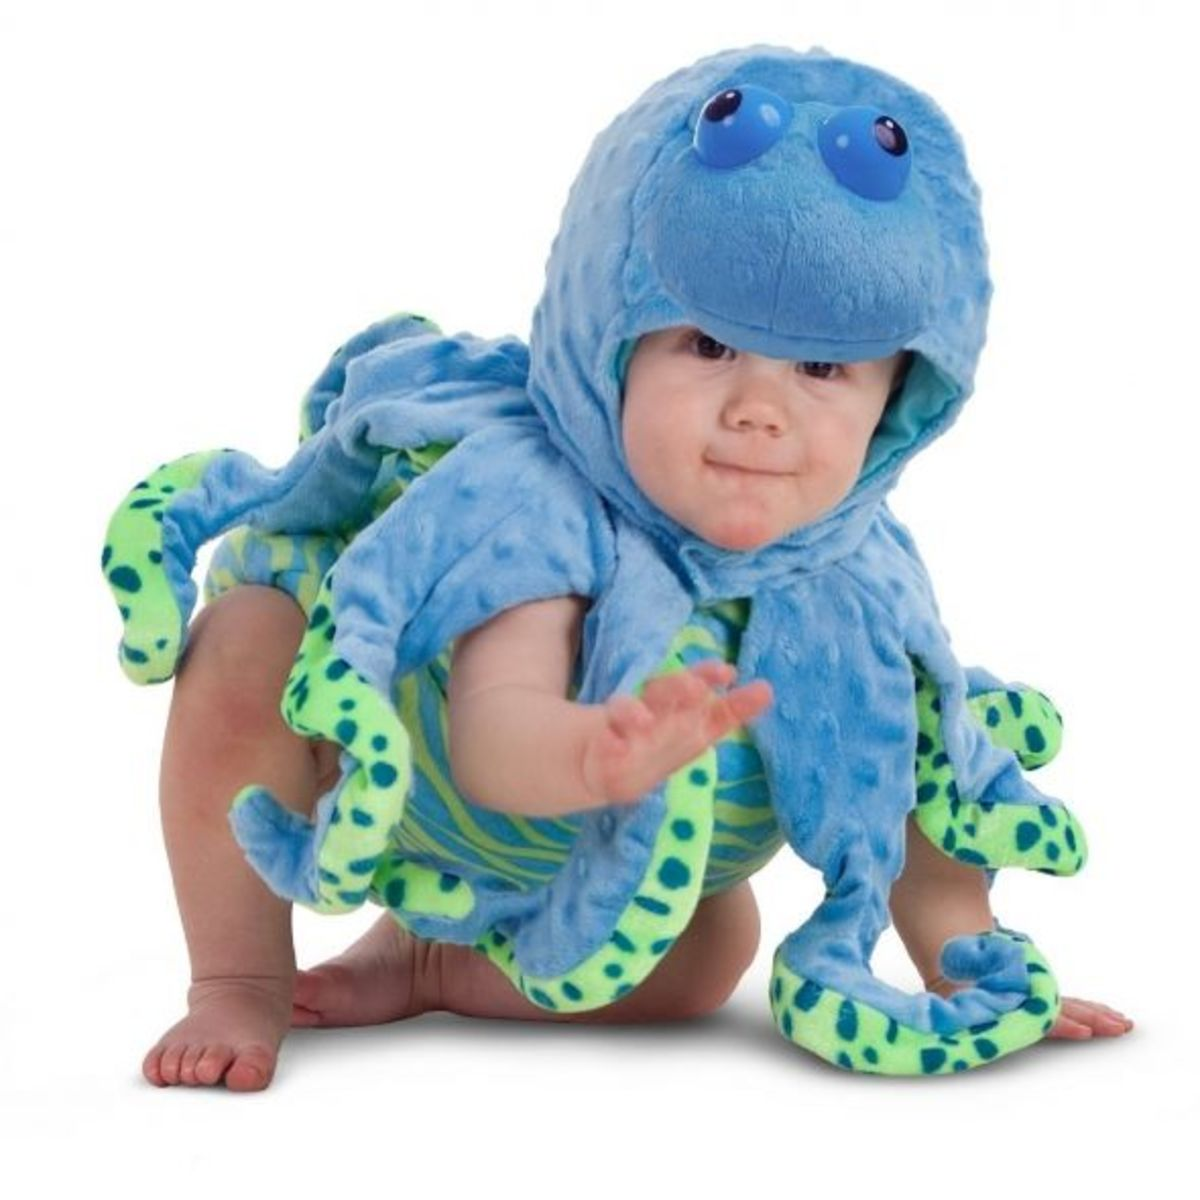 Ocean Octopus Infant / Toddler Costume